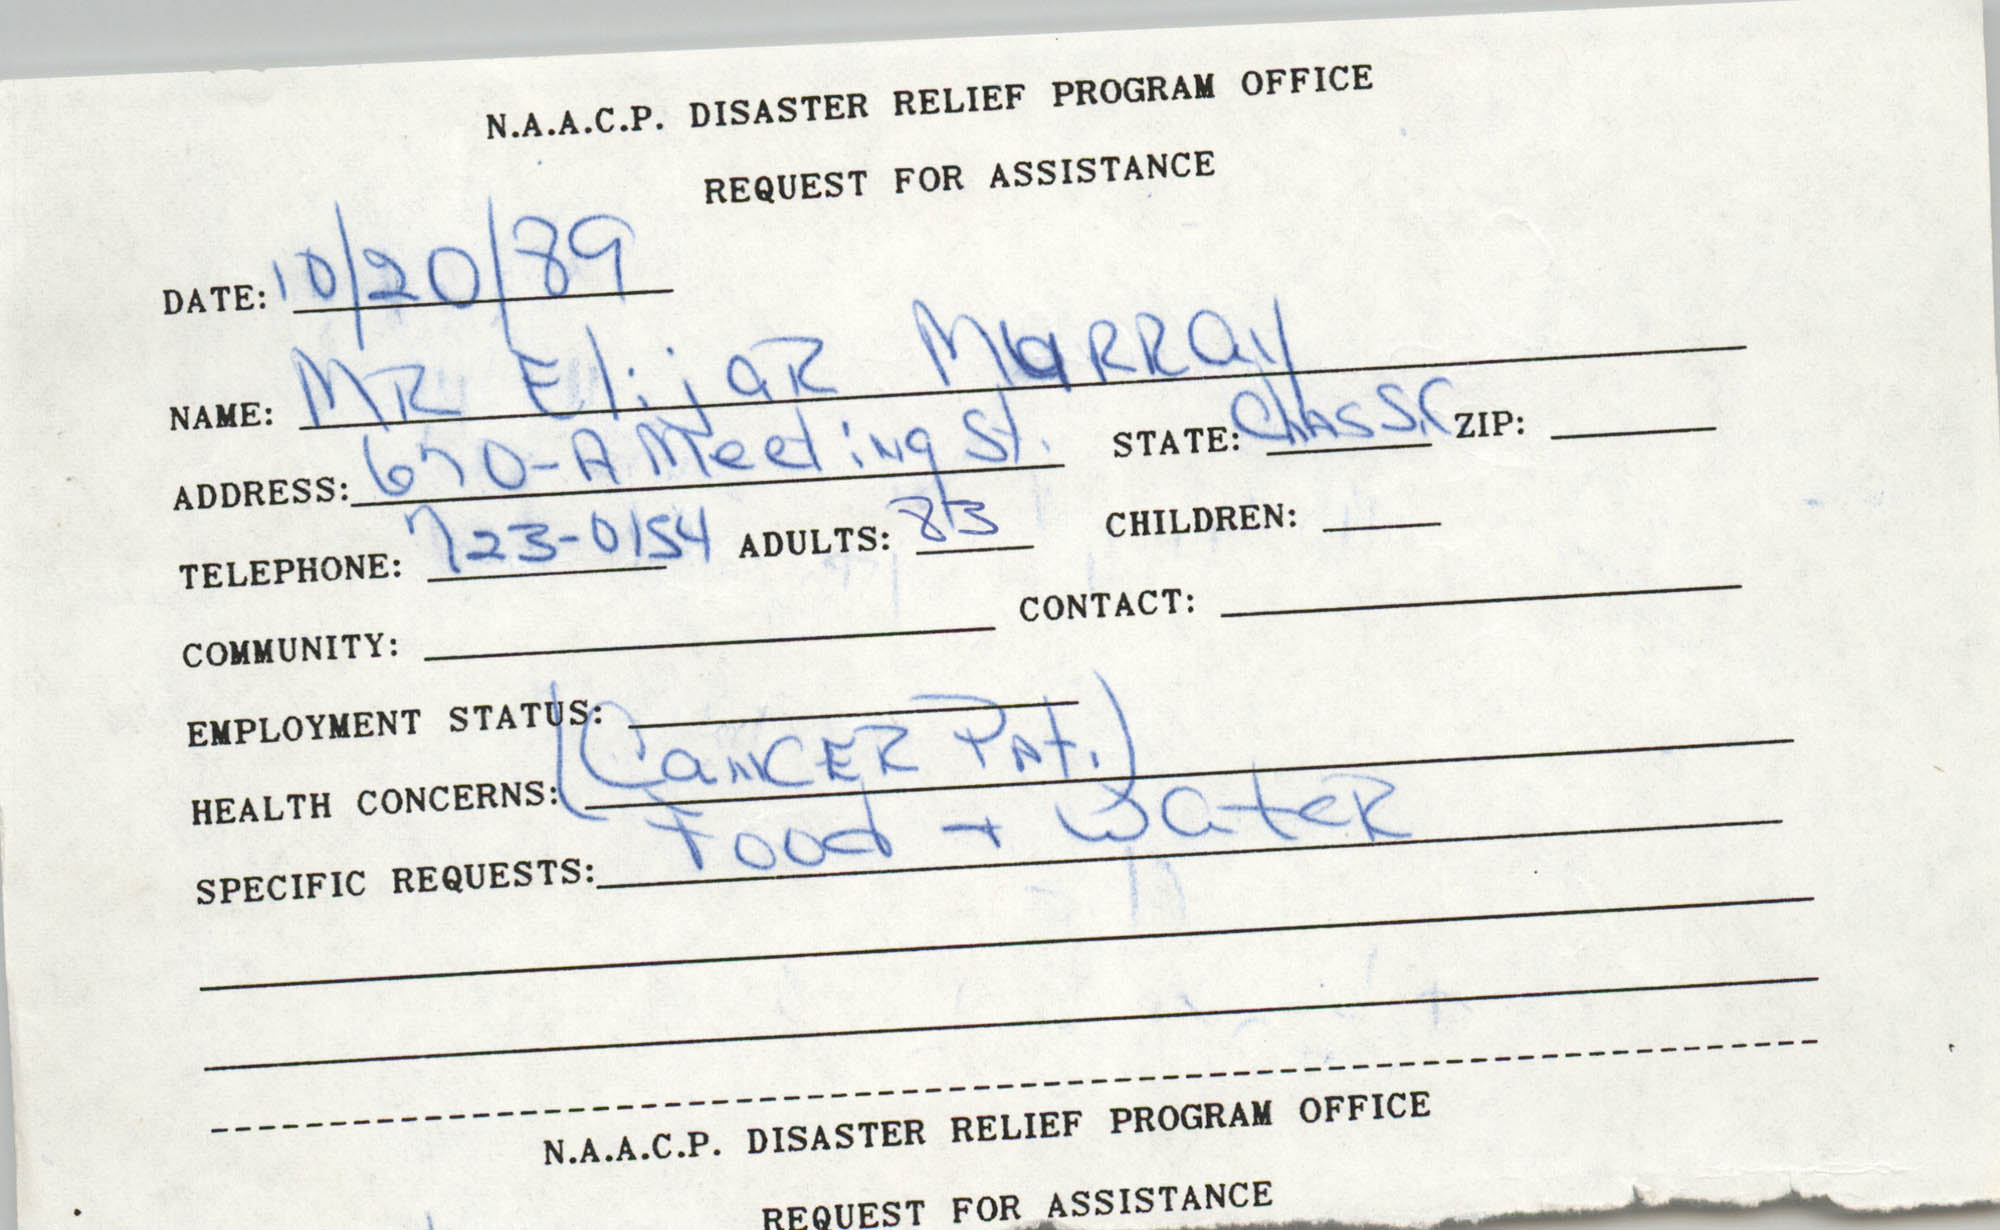 NAACP Disaster Relief Program Office, Hurricane Huge Requests for Assistance, 1989, Page 38